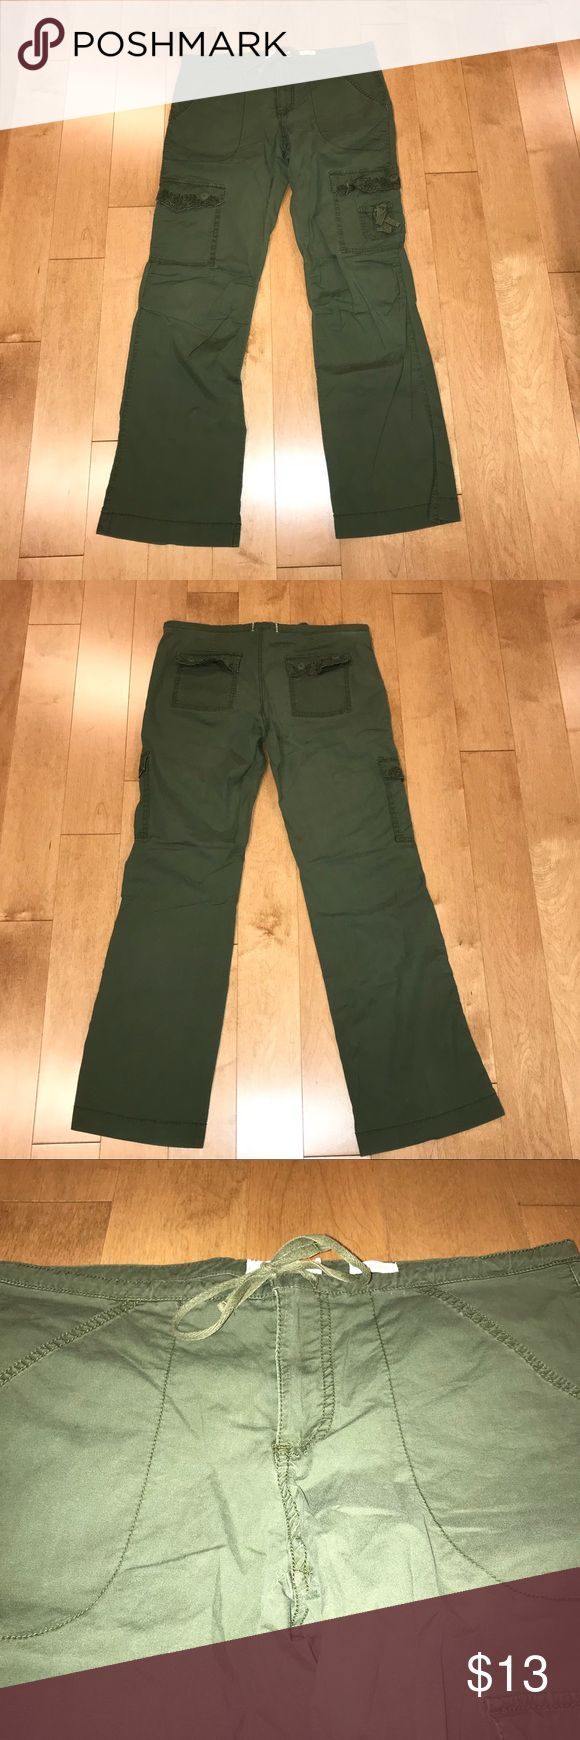 Old navy cargo pants Green old navy cargo pants with cute designs o pockets. Old Navy Pants Straight Leg